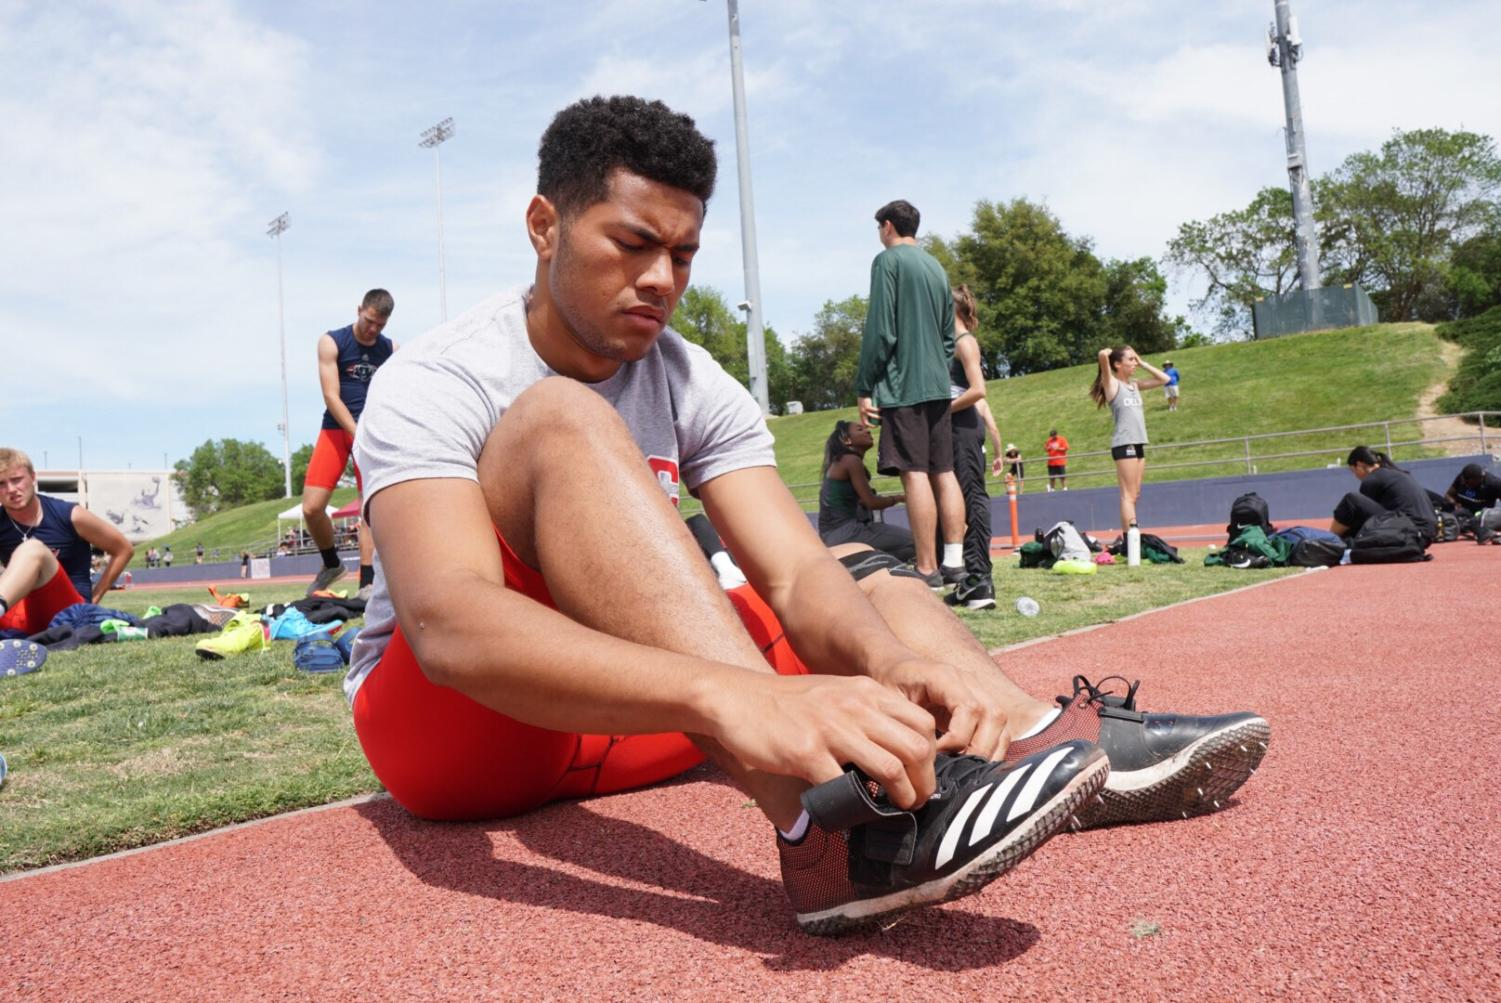 SRJC freshman high-jumper Waisea Jikoiono set the top mark in California with a 6-foot-7.5 inch jump early in March 2019.